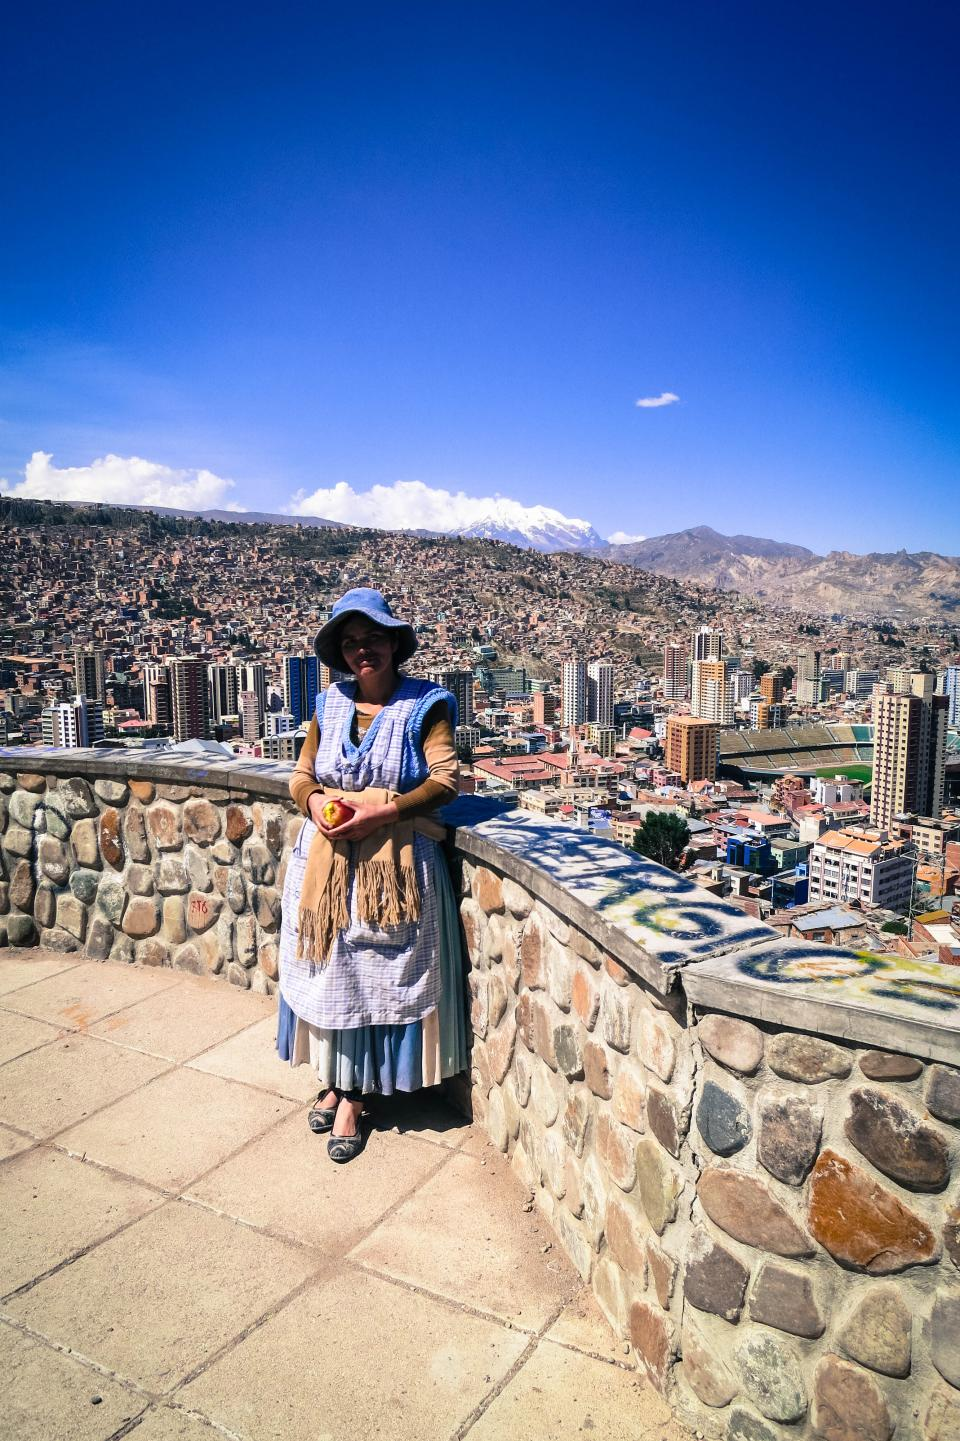 La Paz Bolivia woman lady view buildings city mountains view